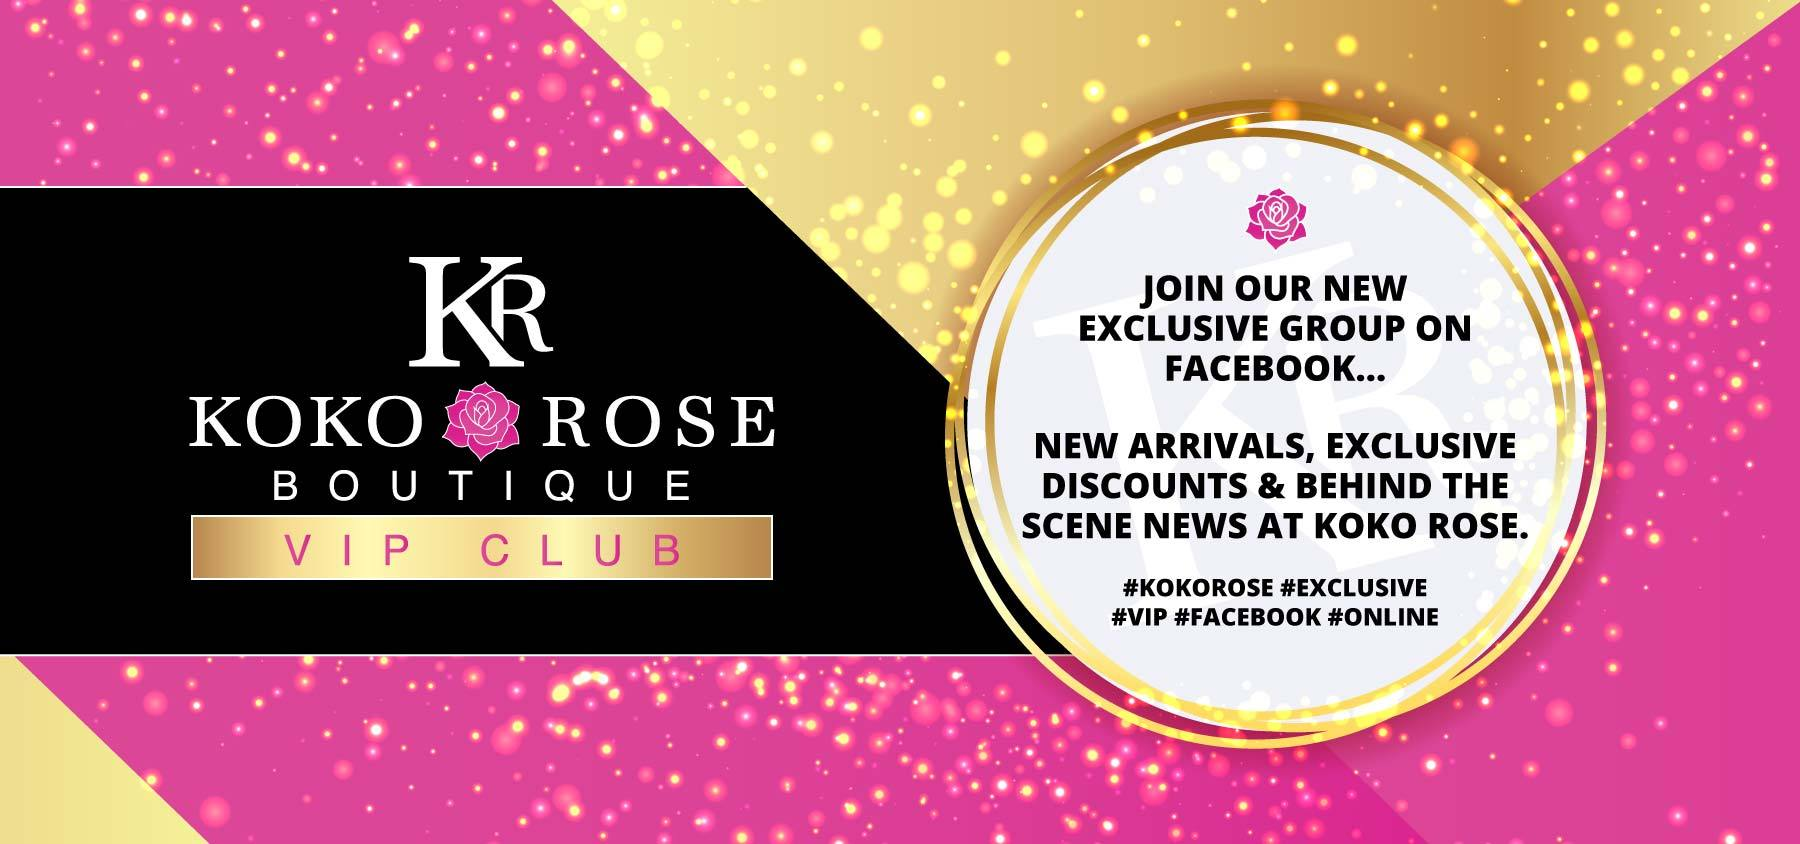 Koko Rose Gift Vouchers